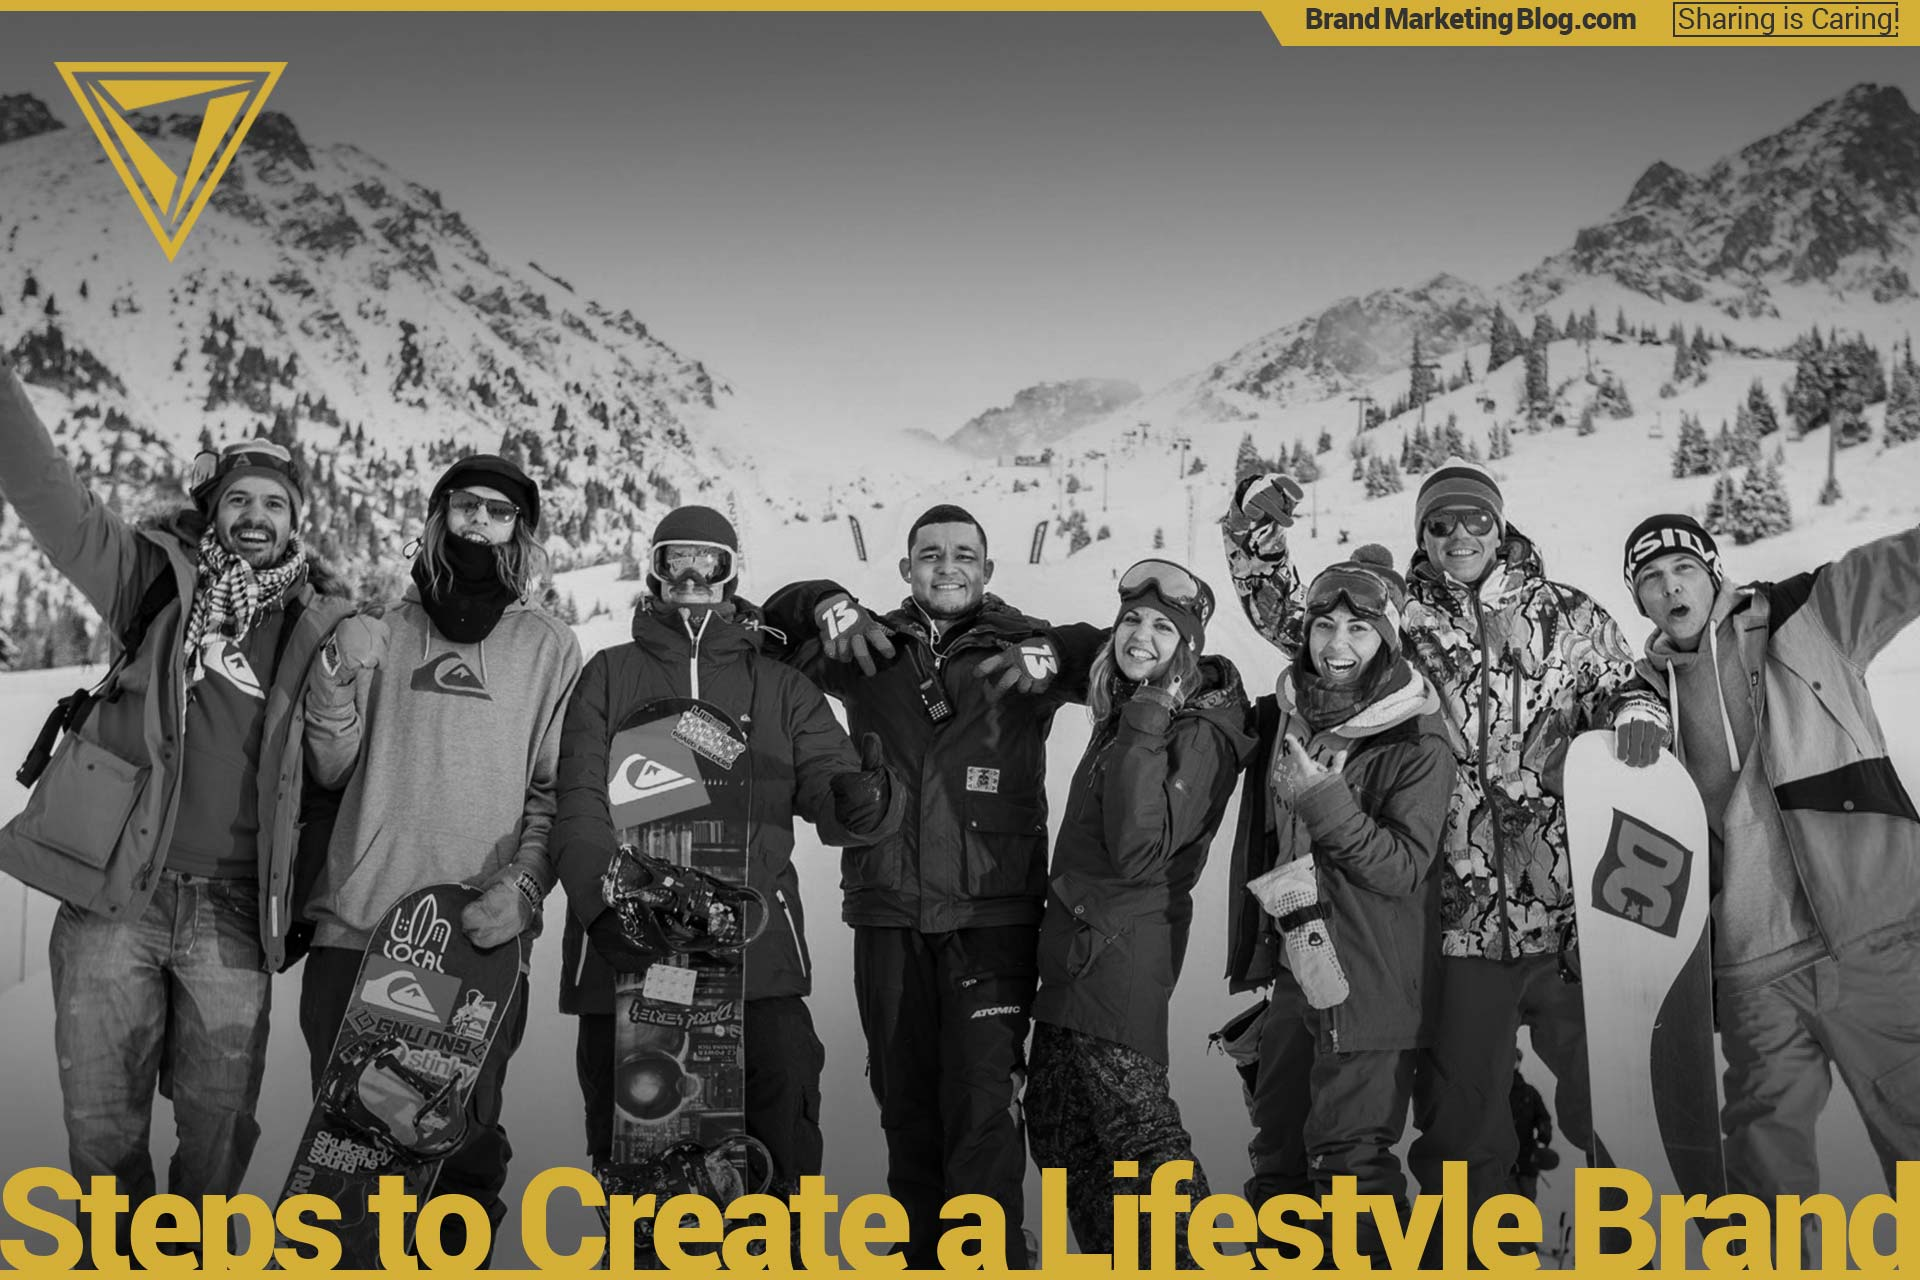 Ski lifestyle. A group of 9 skiiers and boarders posting on a mountain. Quiksilver, DC Shoes